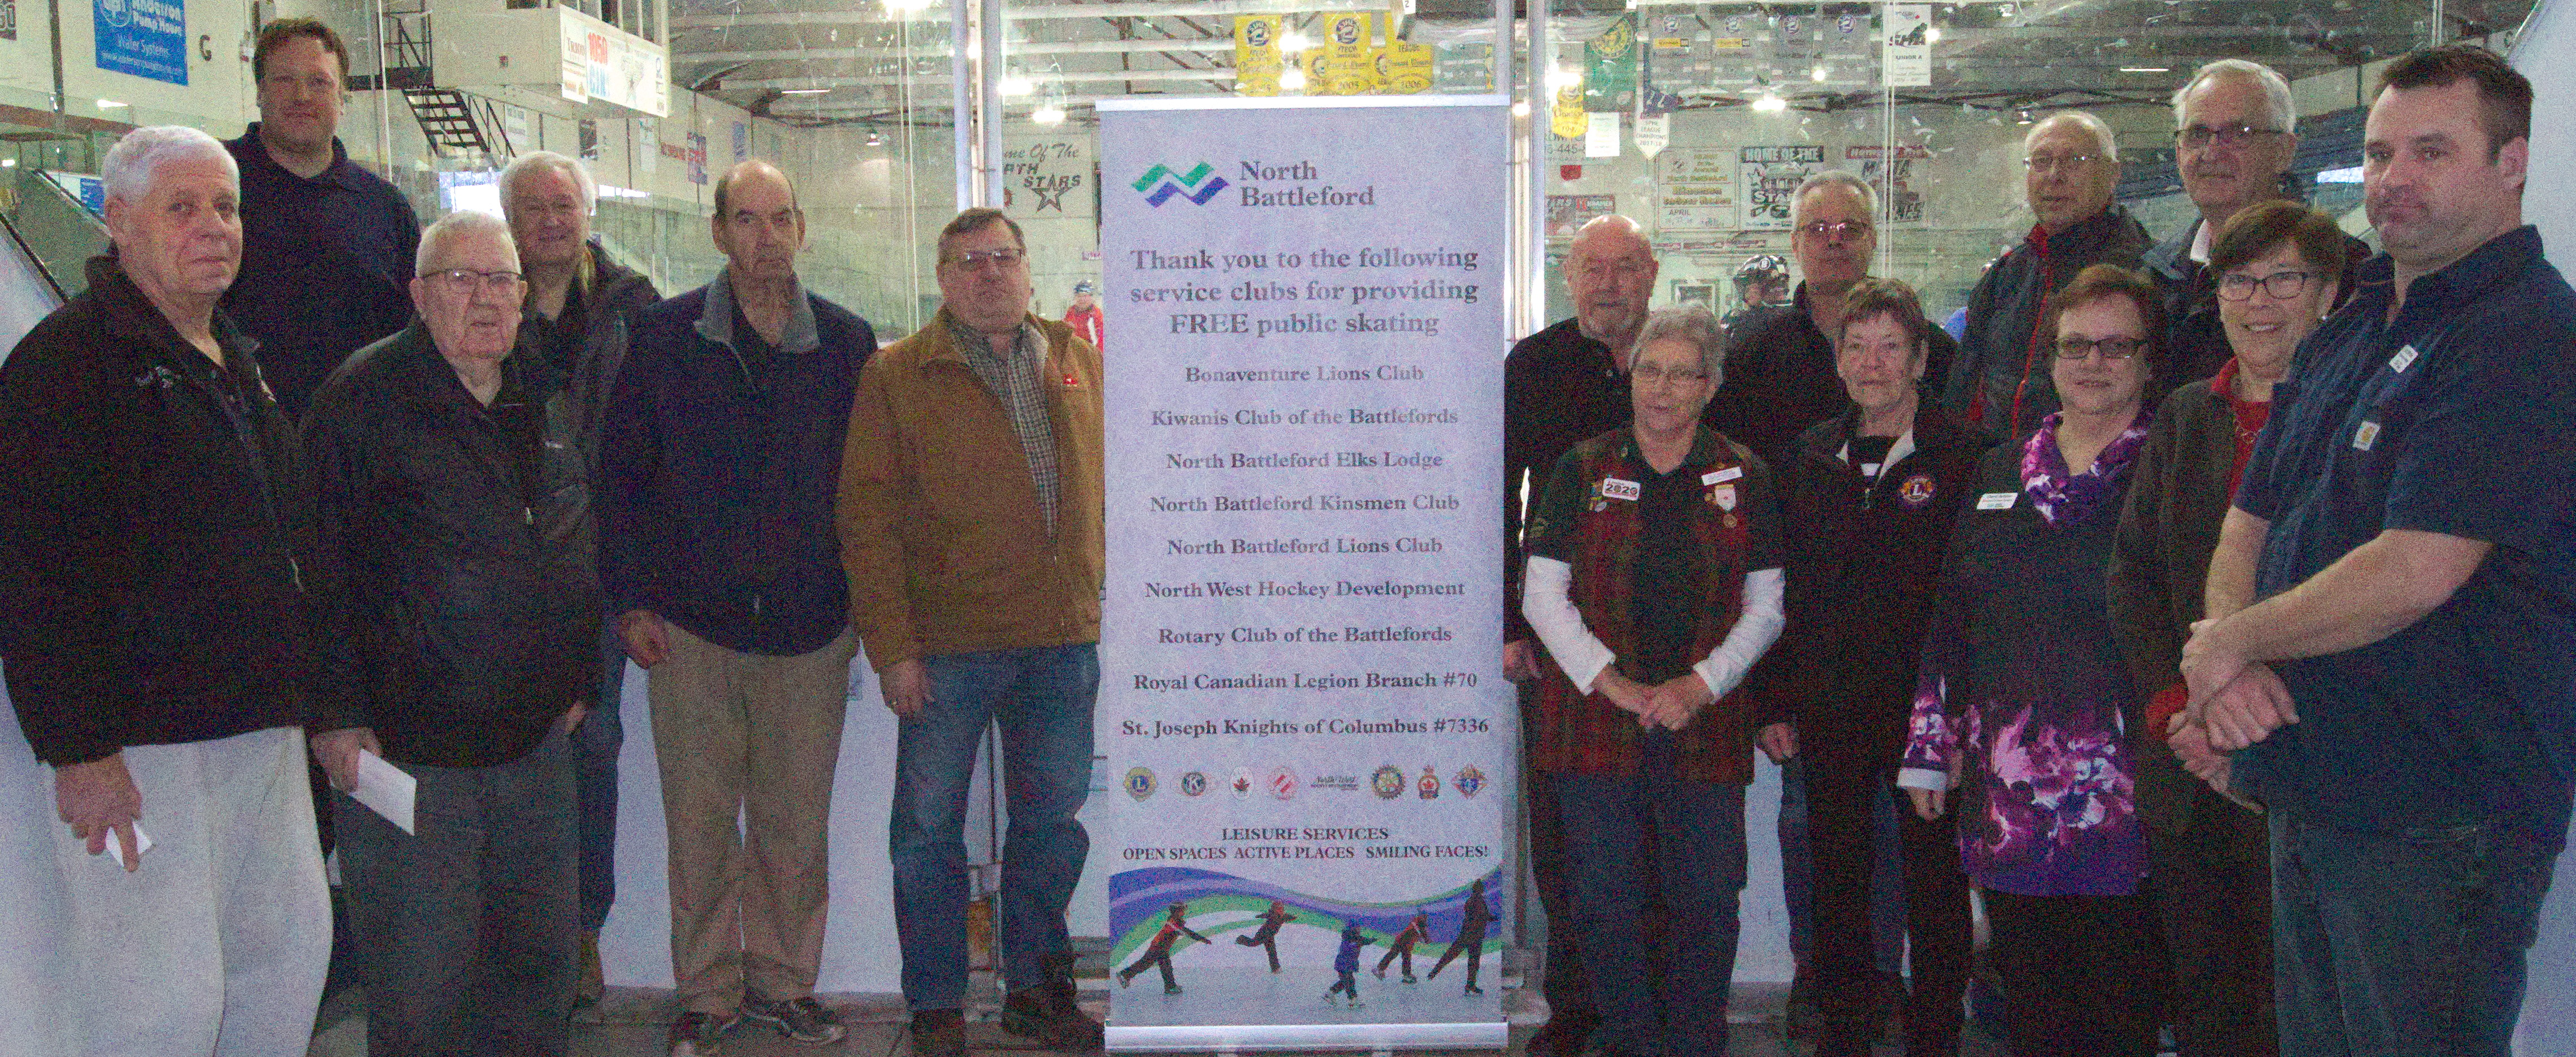 The City of North Battleford acknowledges the contribution of Service Clubs that make free public skating possible.